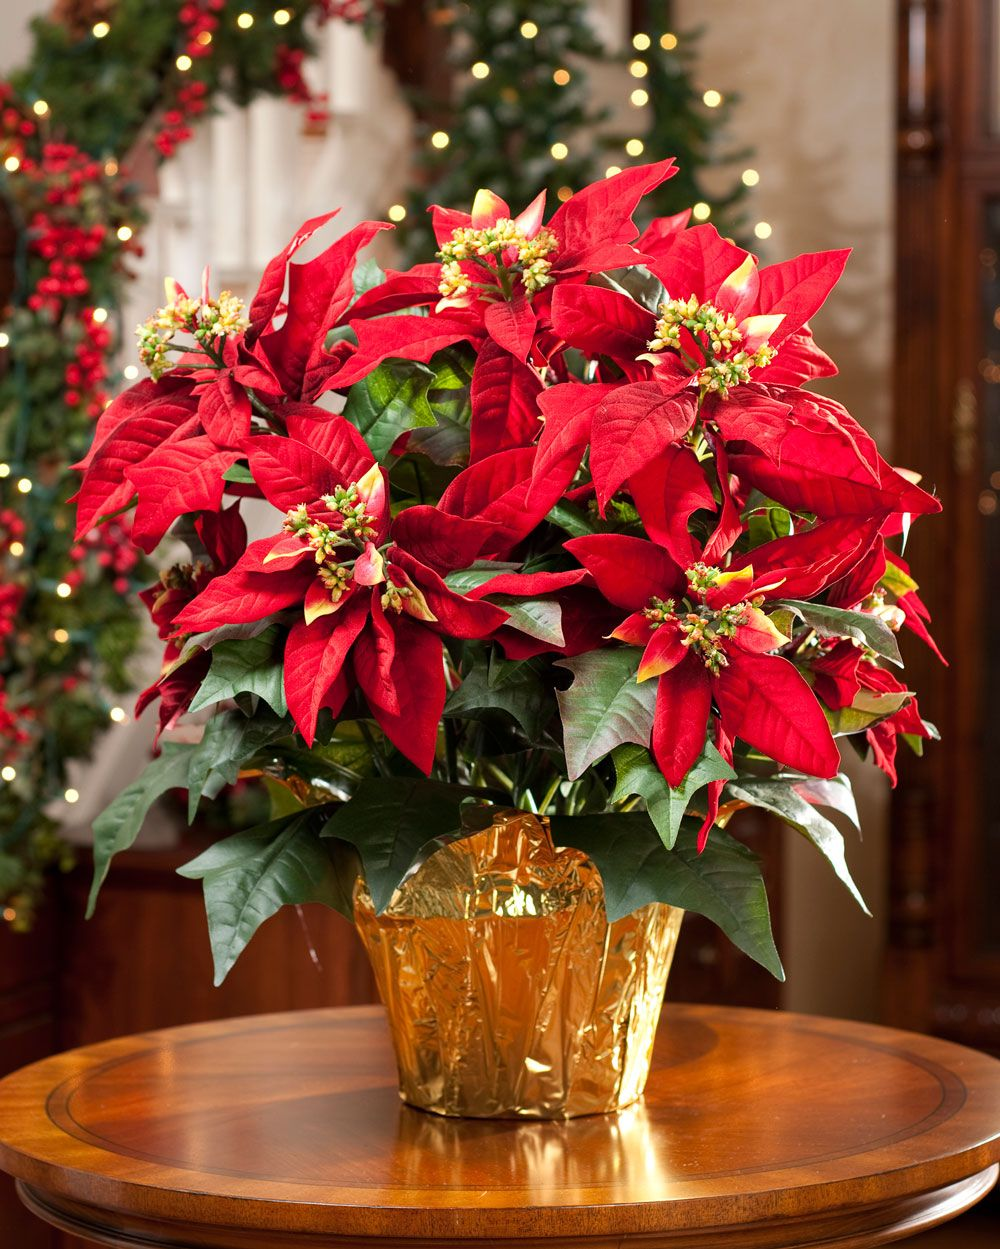 White And Red Poinsettias Ii Poinsettia Holiday Floral Holiday Flower